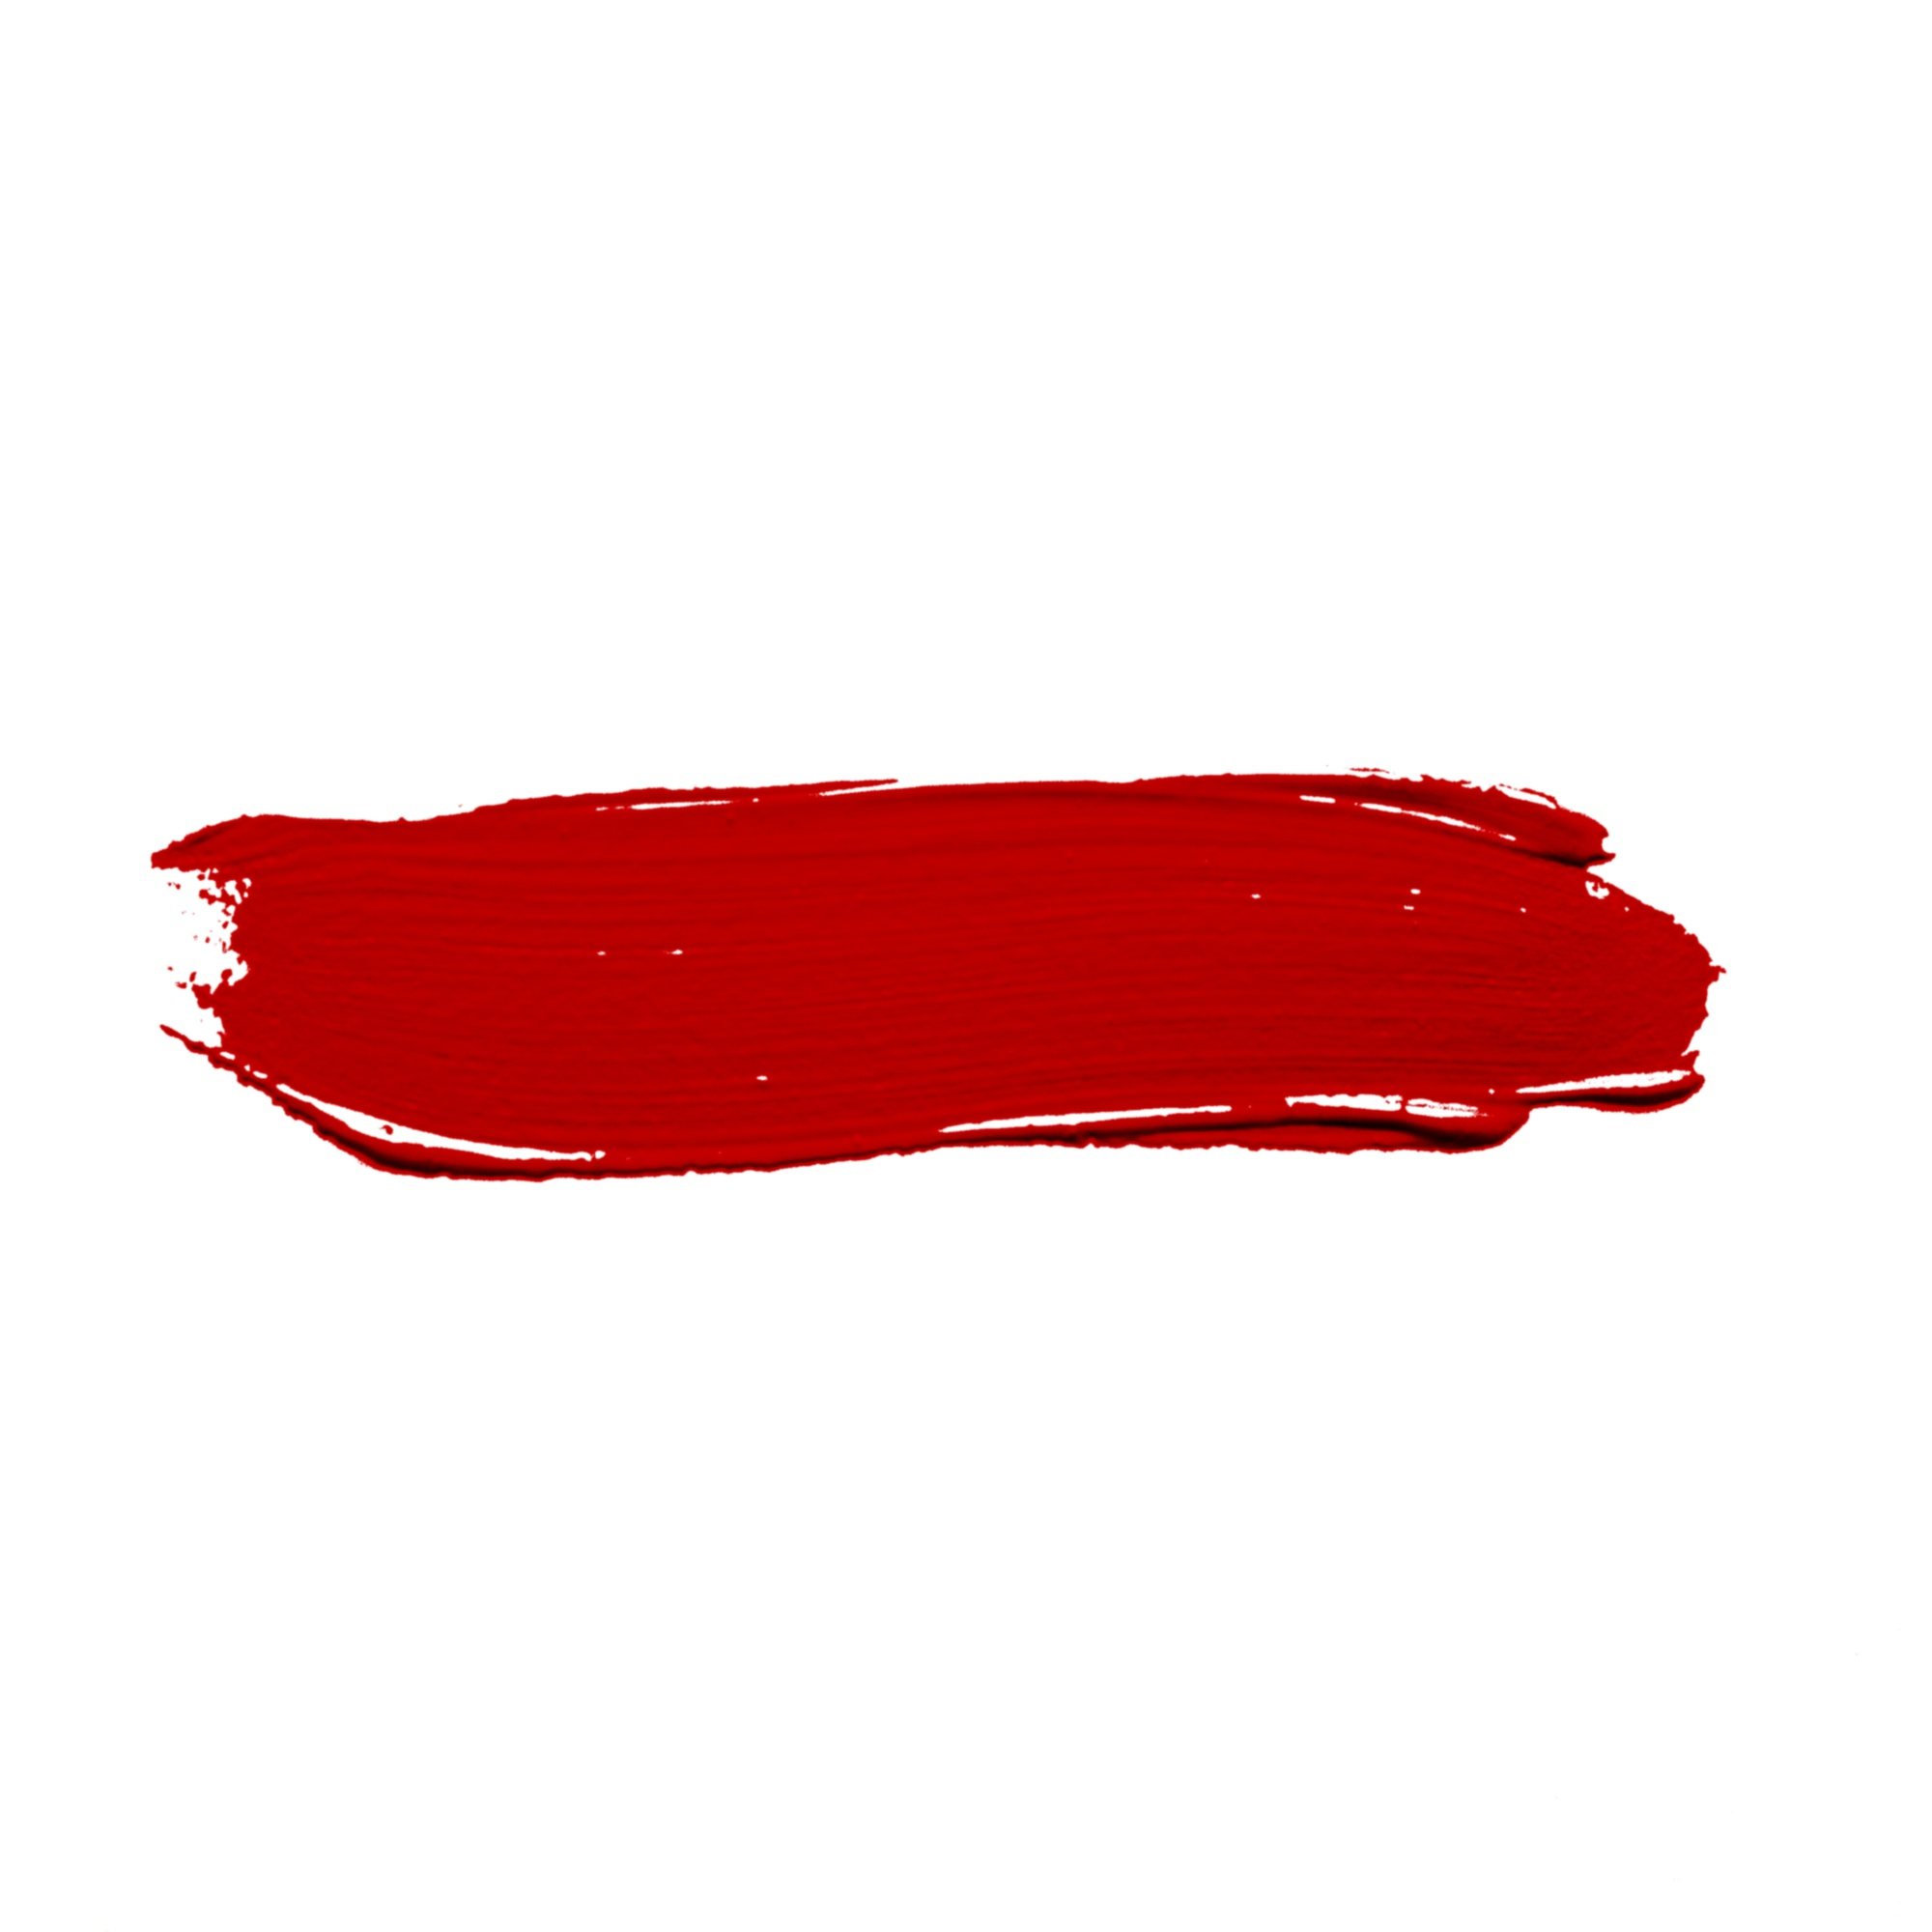 Stroke of bright red paint